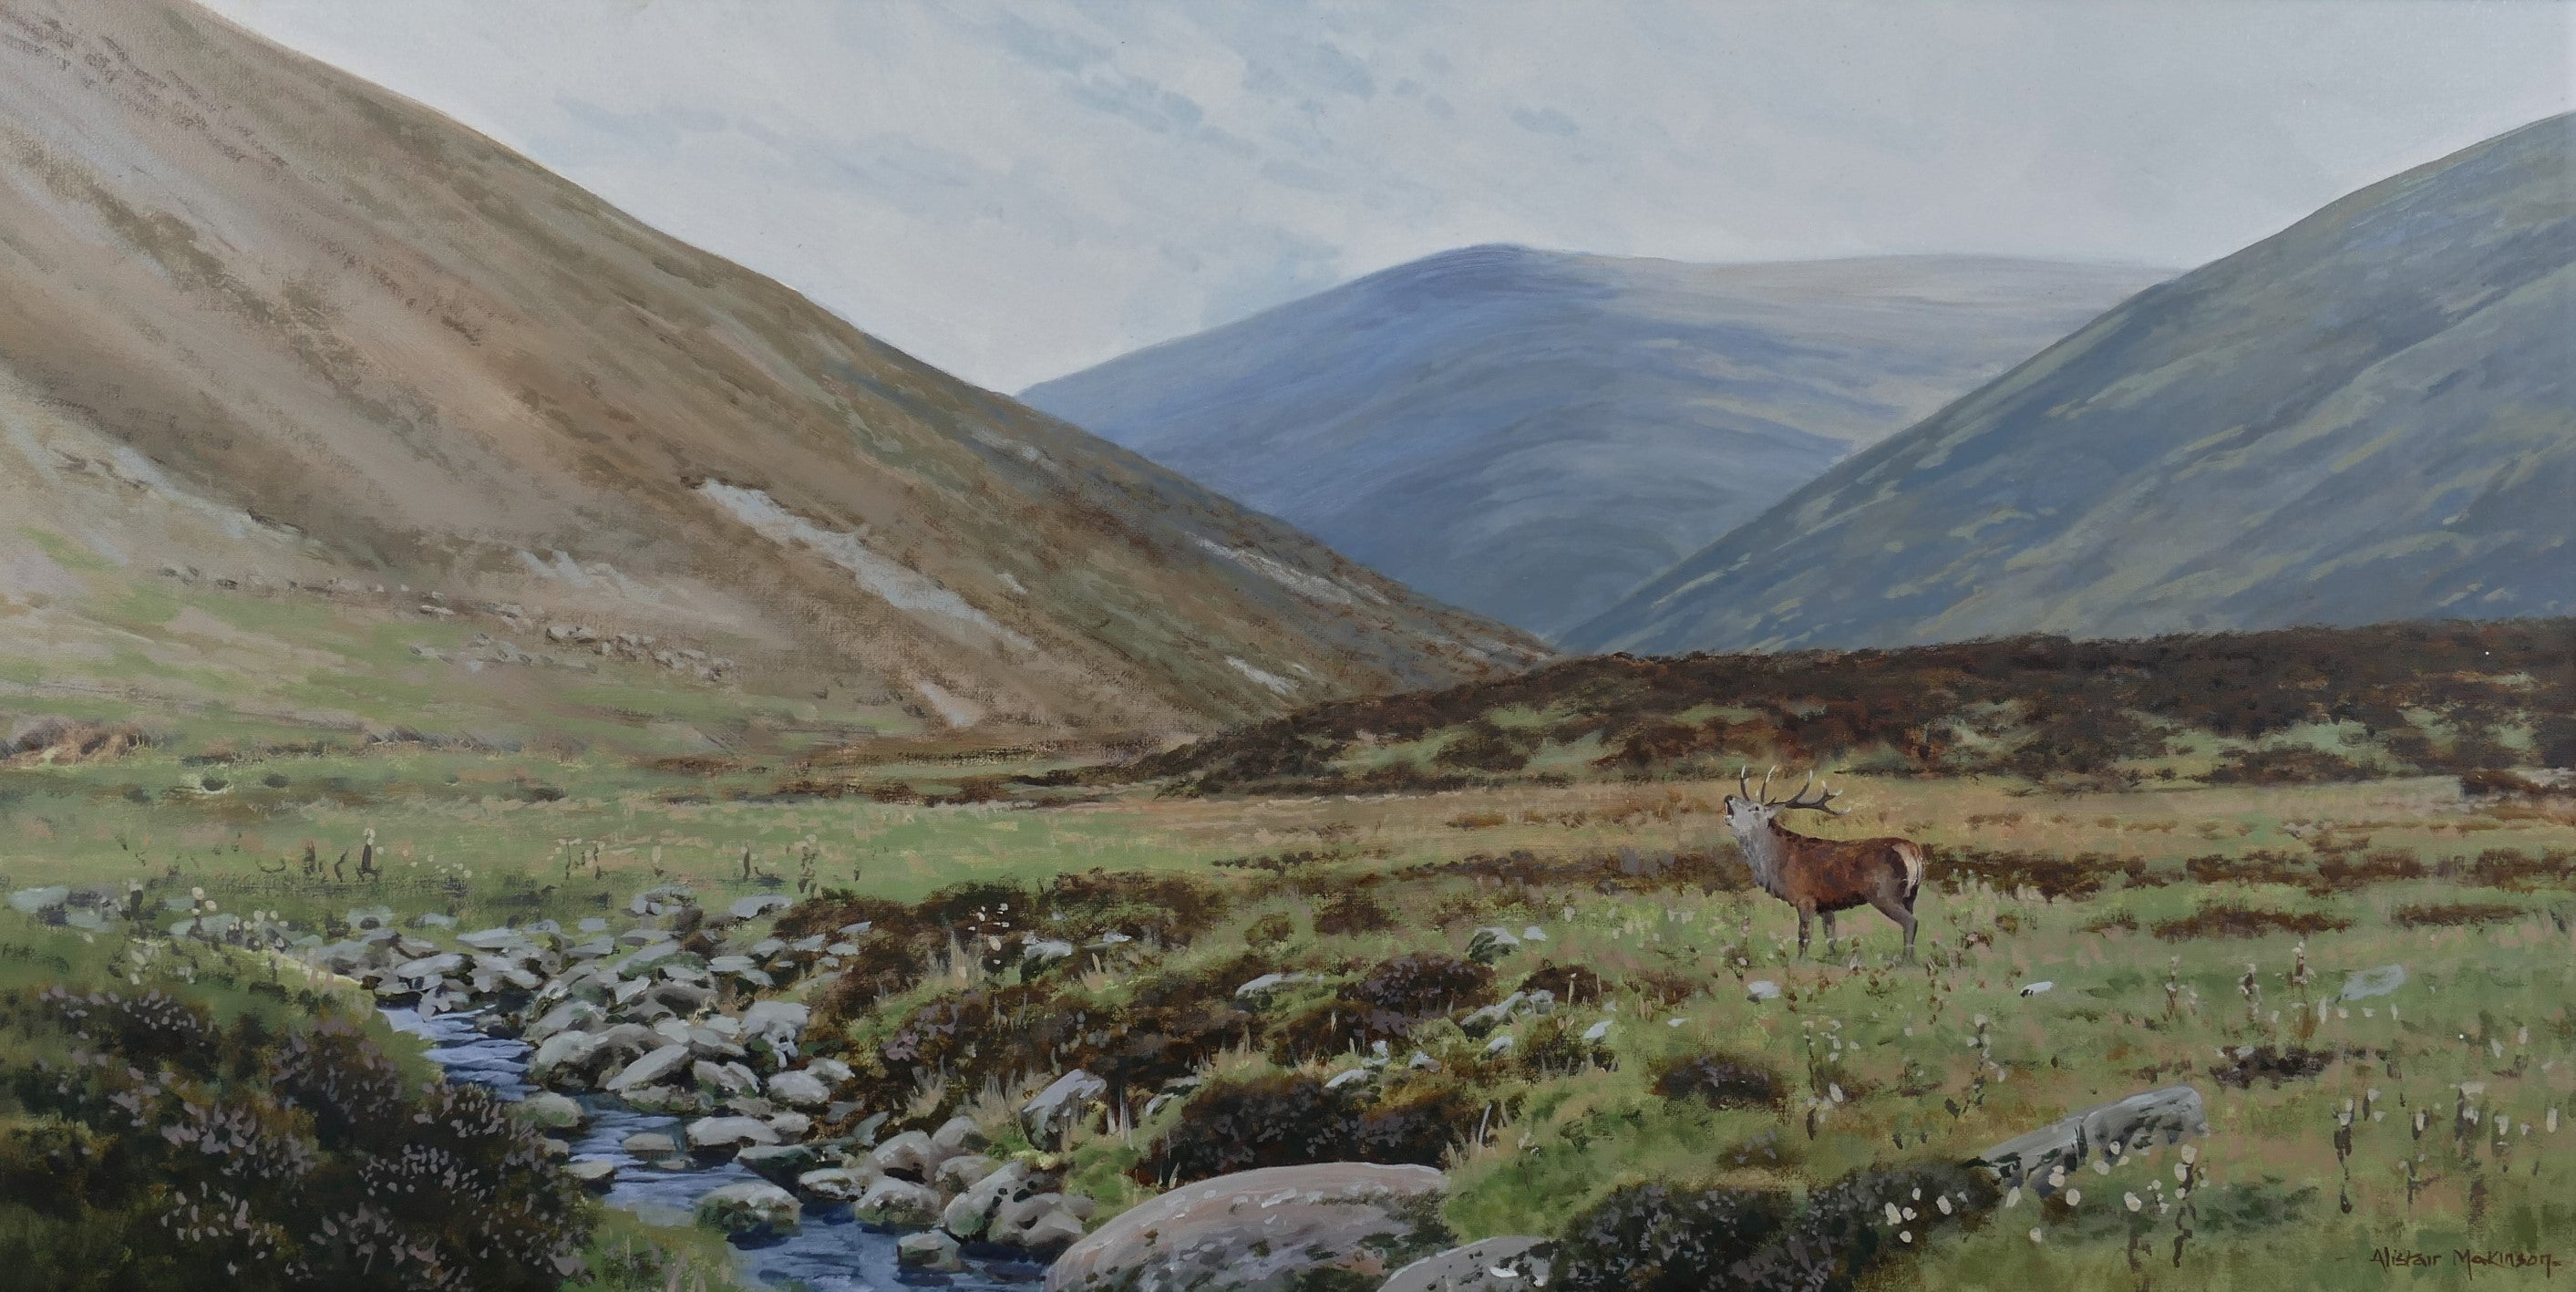 'Rutting Stag' - Original Oil Painting by Alistair Makinson - 40 x 80cm